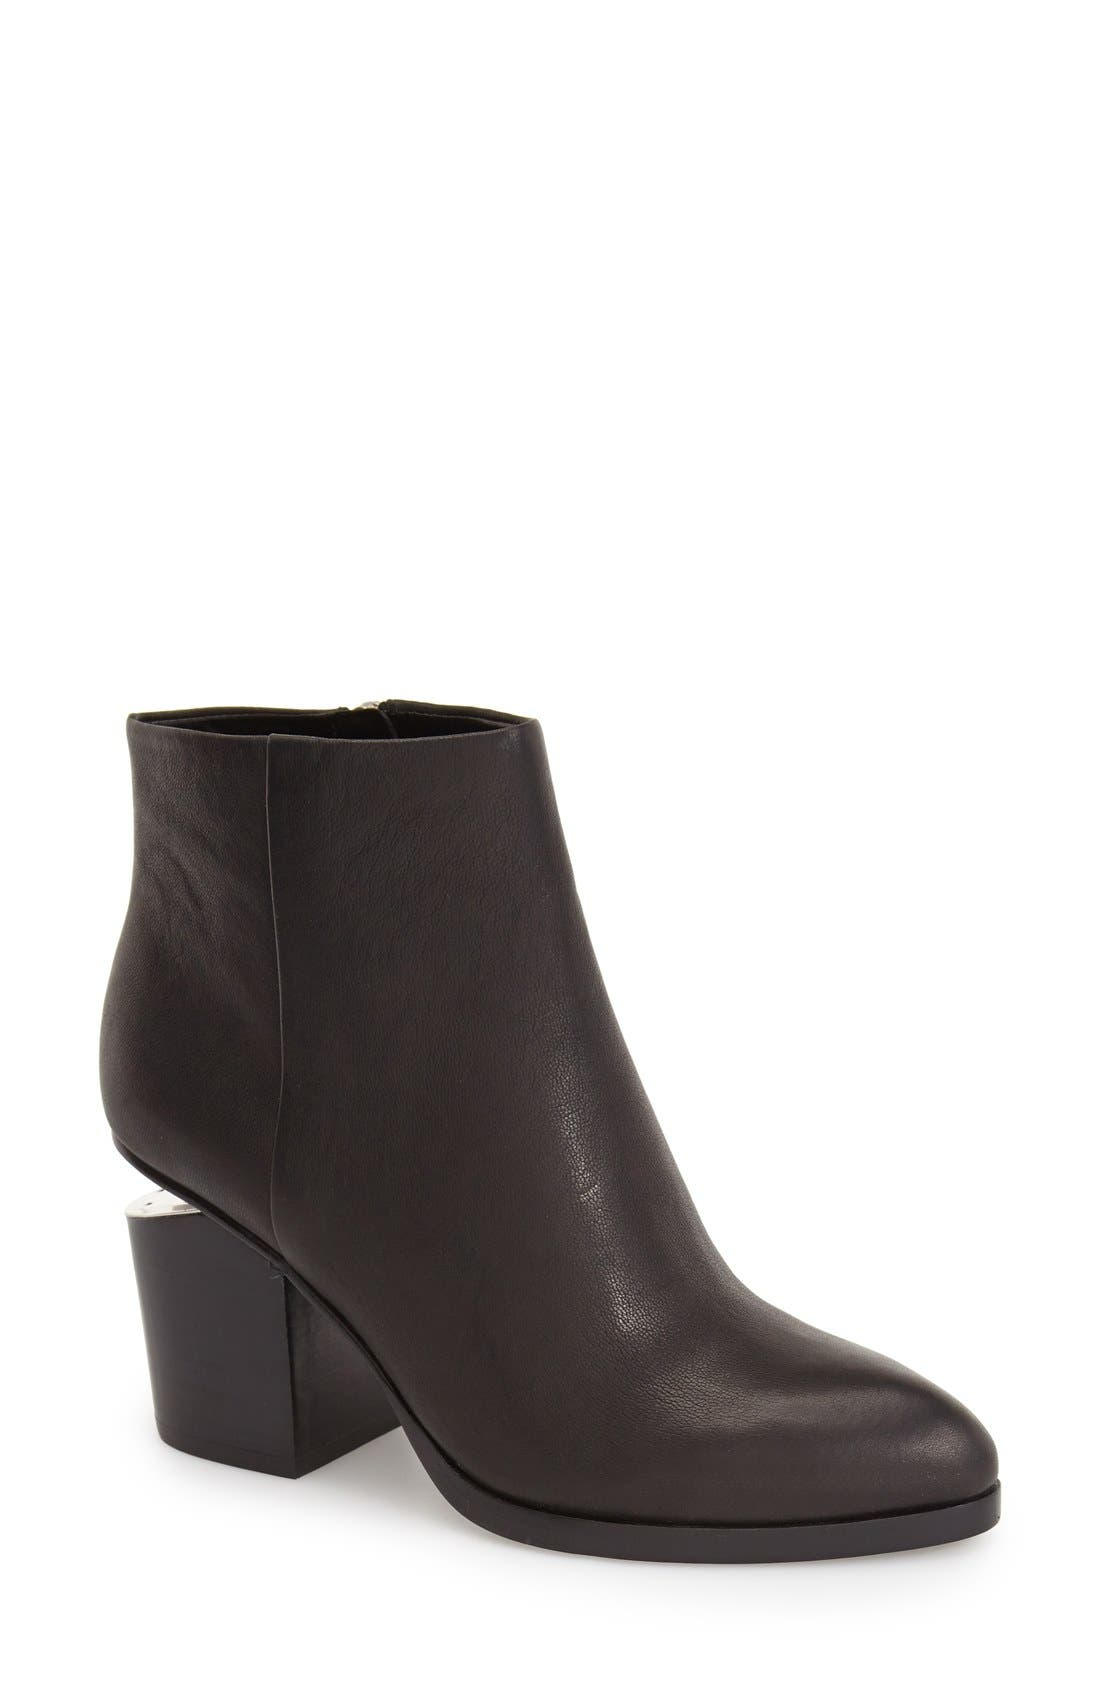 Gabi Leather Bootie,                             Main thumbnail 1, color,                             BLACK LEATHER/ SILVER